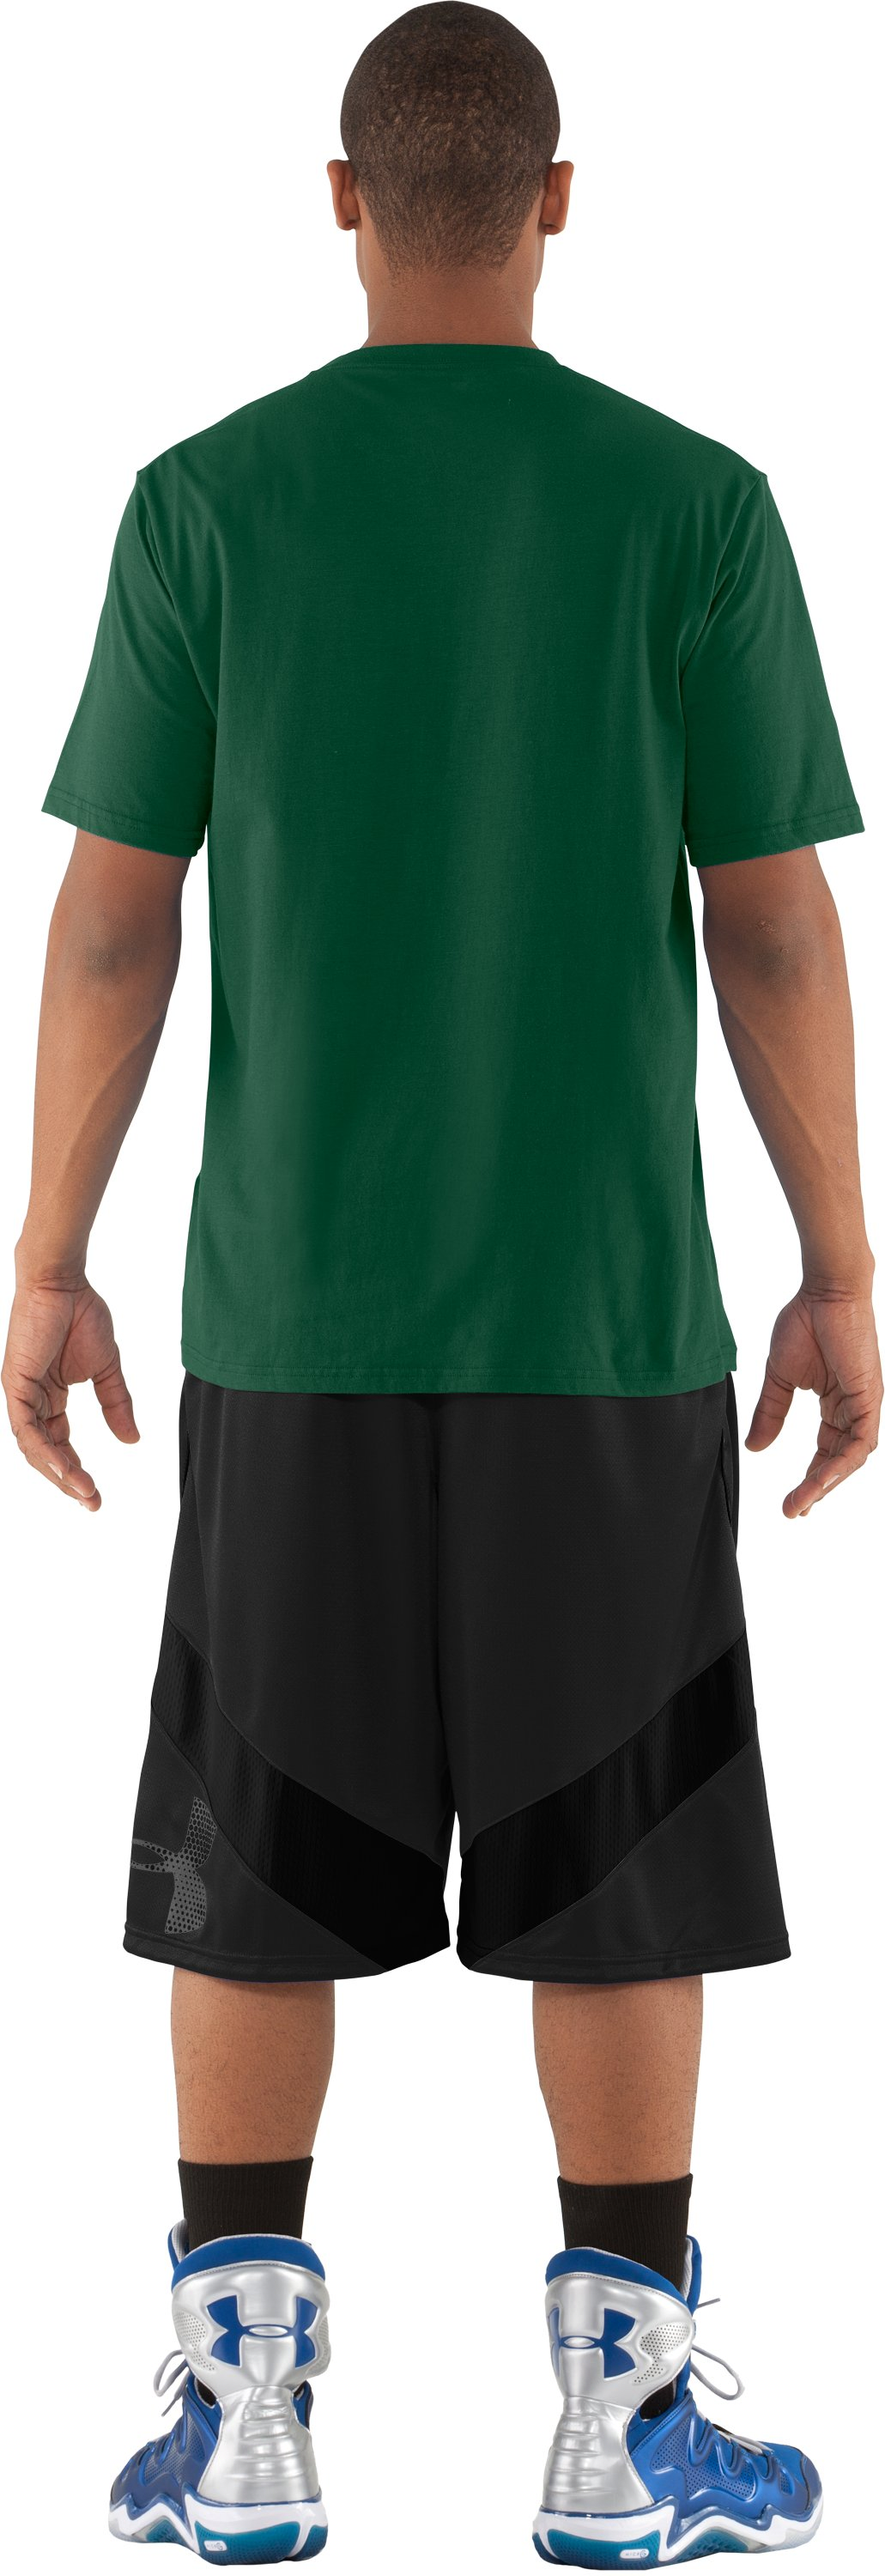 Men's Miami UA Basketball T-Shirt, Forest Green, Back